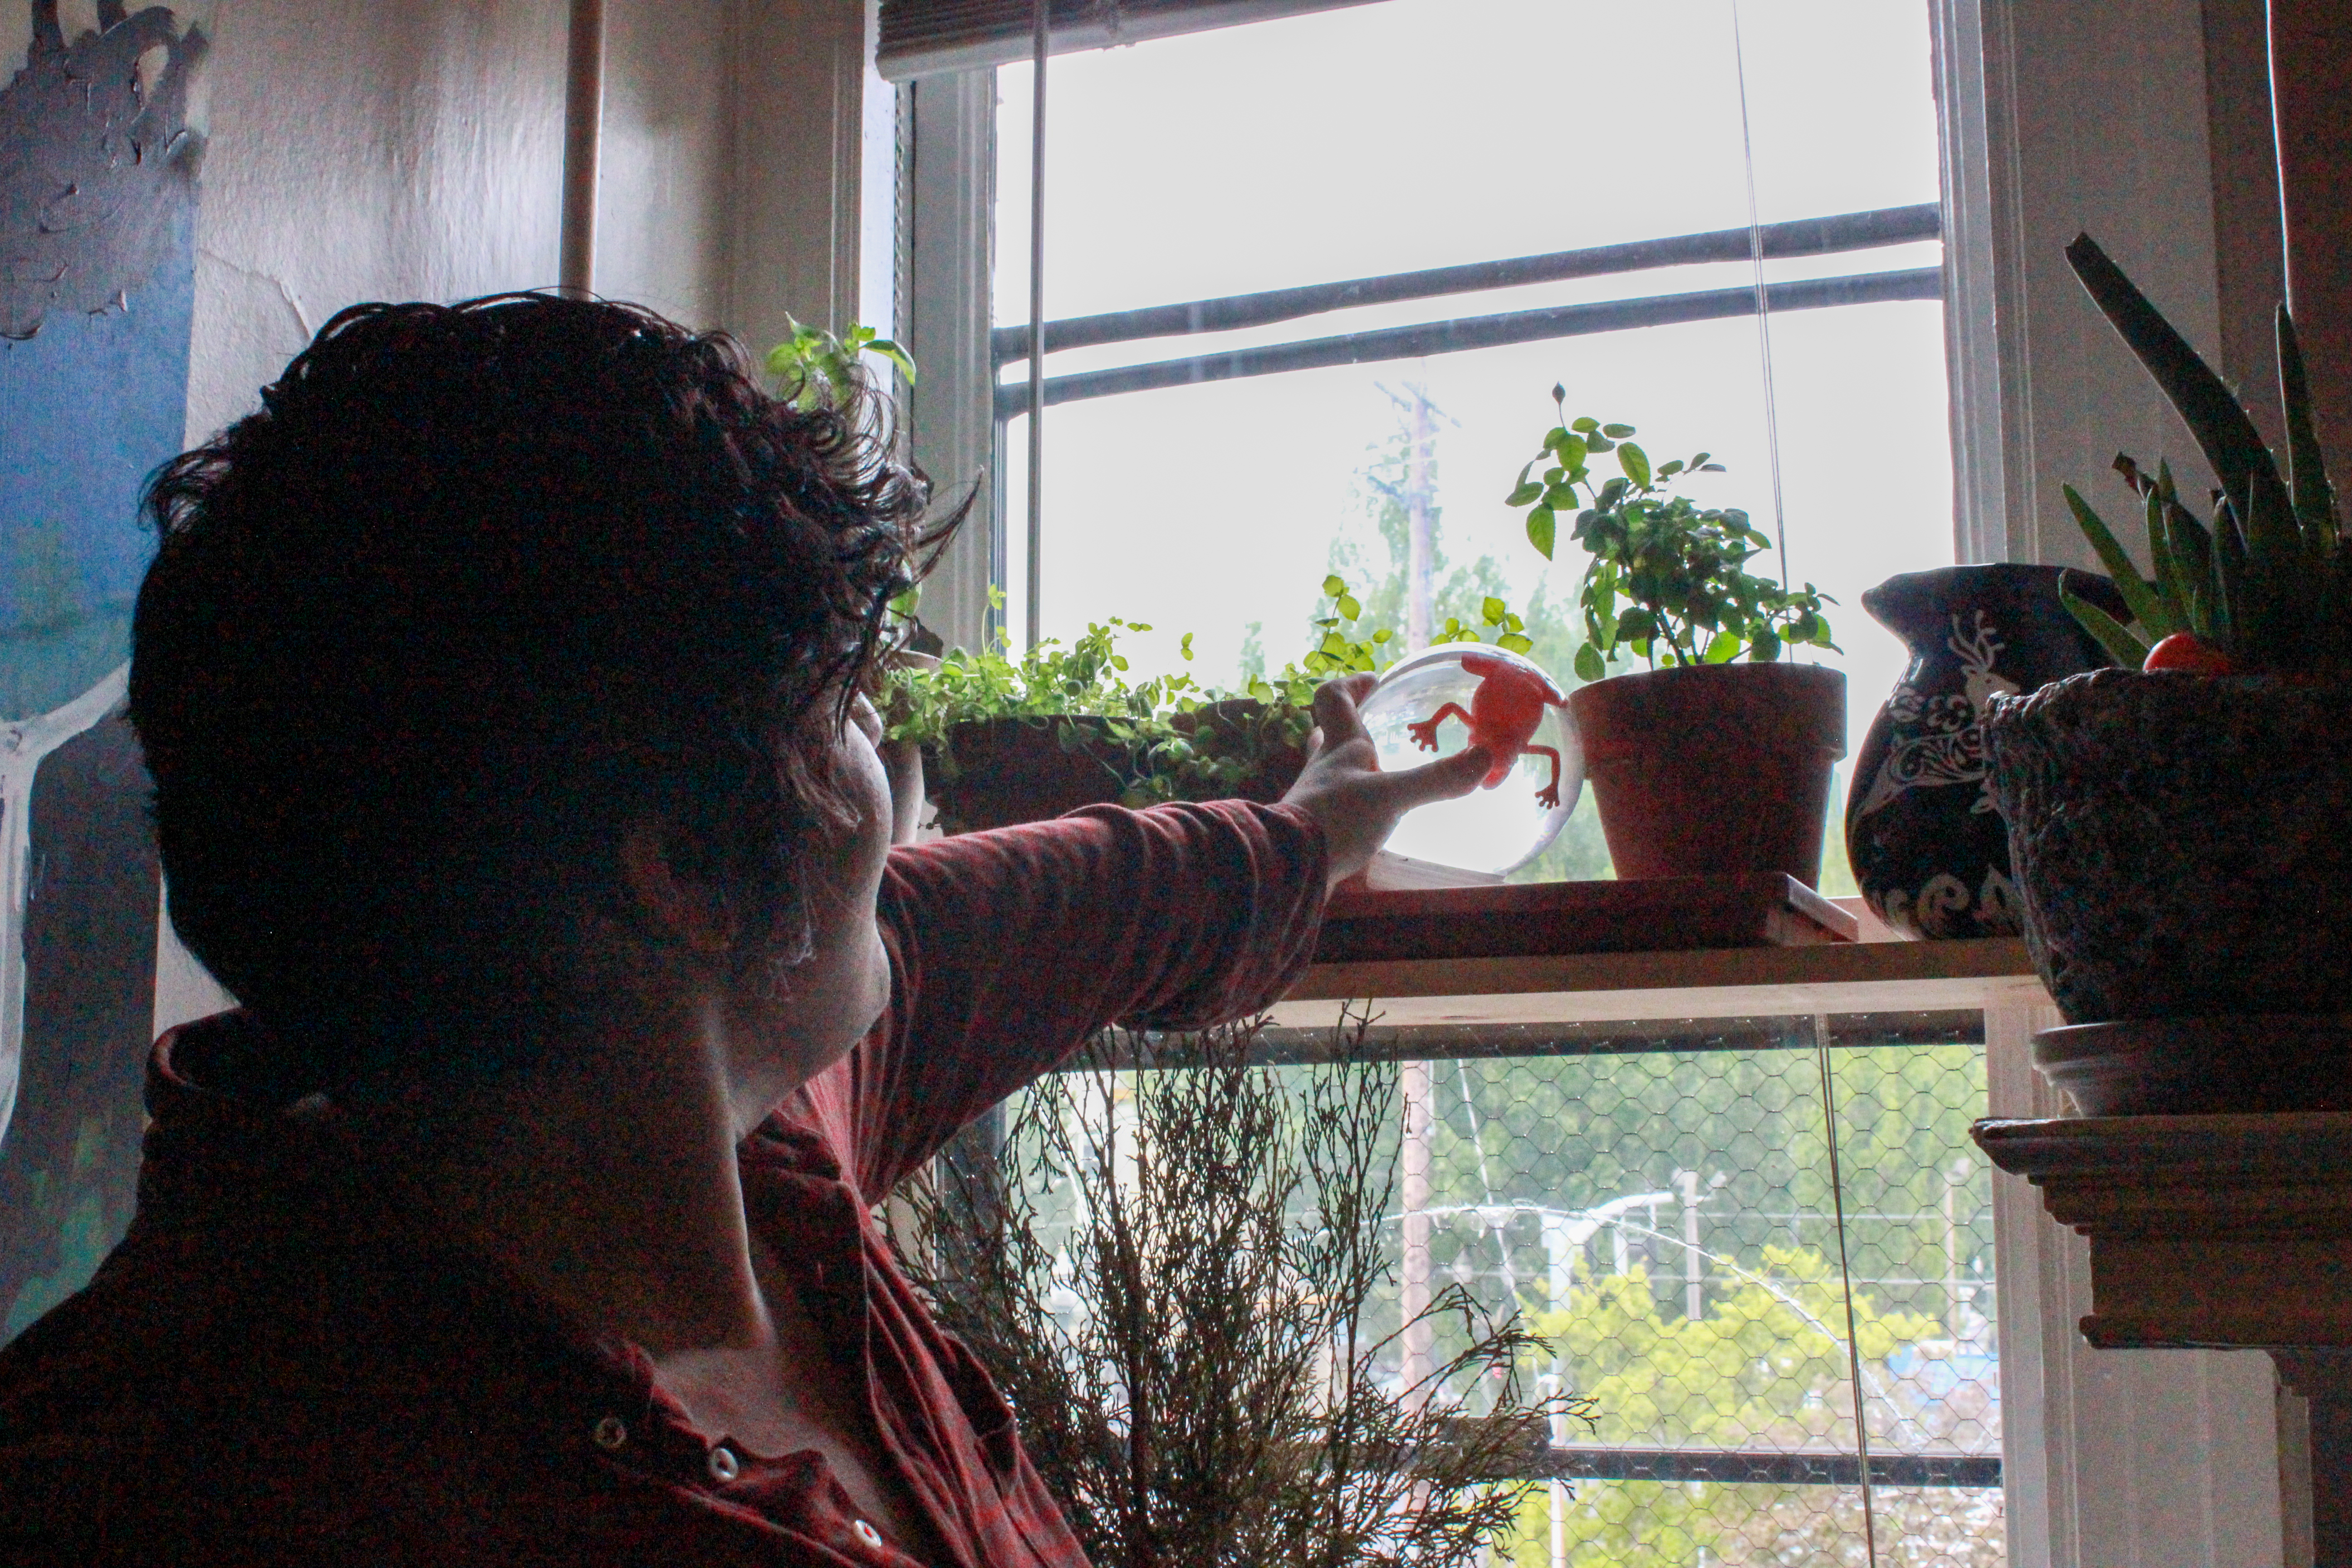 Photo showing Rae Bloodgood looking at snowglobe on shelf in apartment